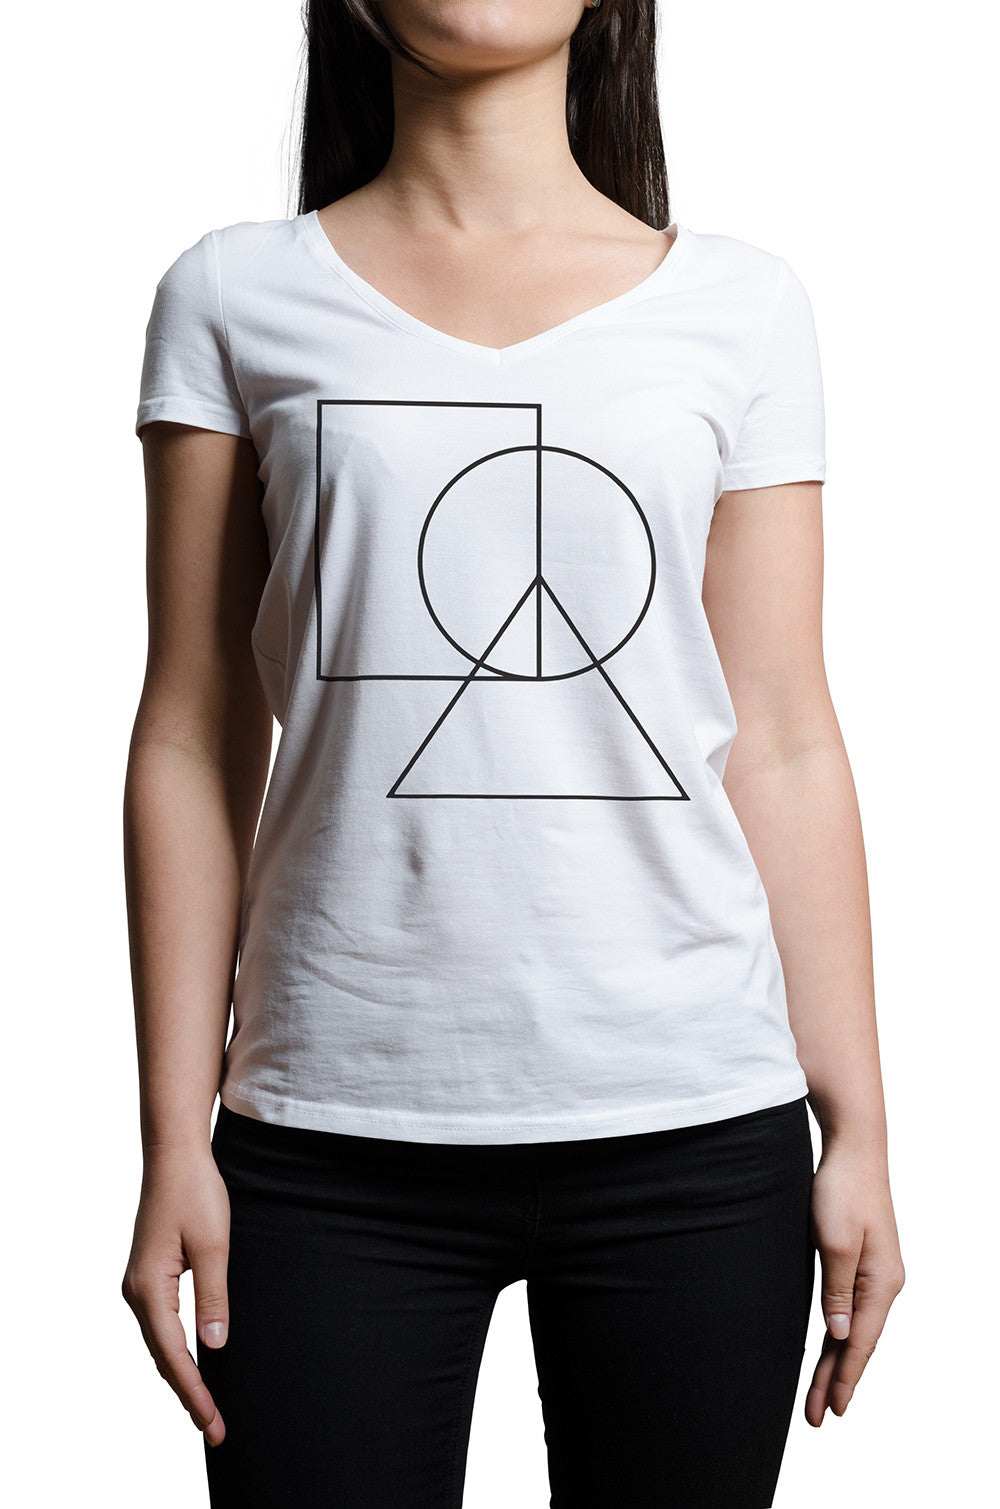 Women's V-Neck Peace Sign Tee - ALL BROTHERS ALL STARS -  - T-shirts - 3